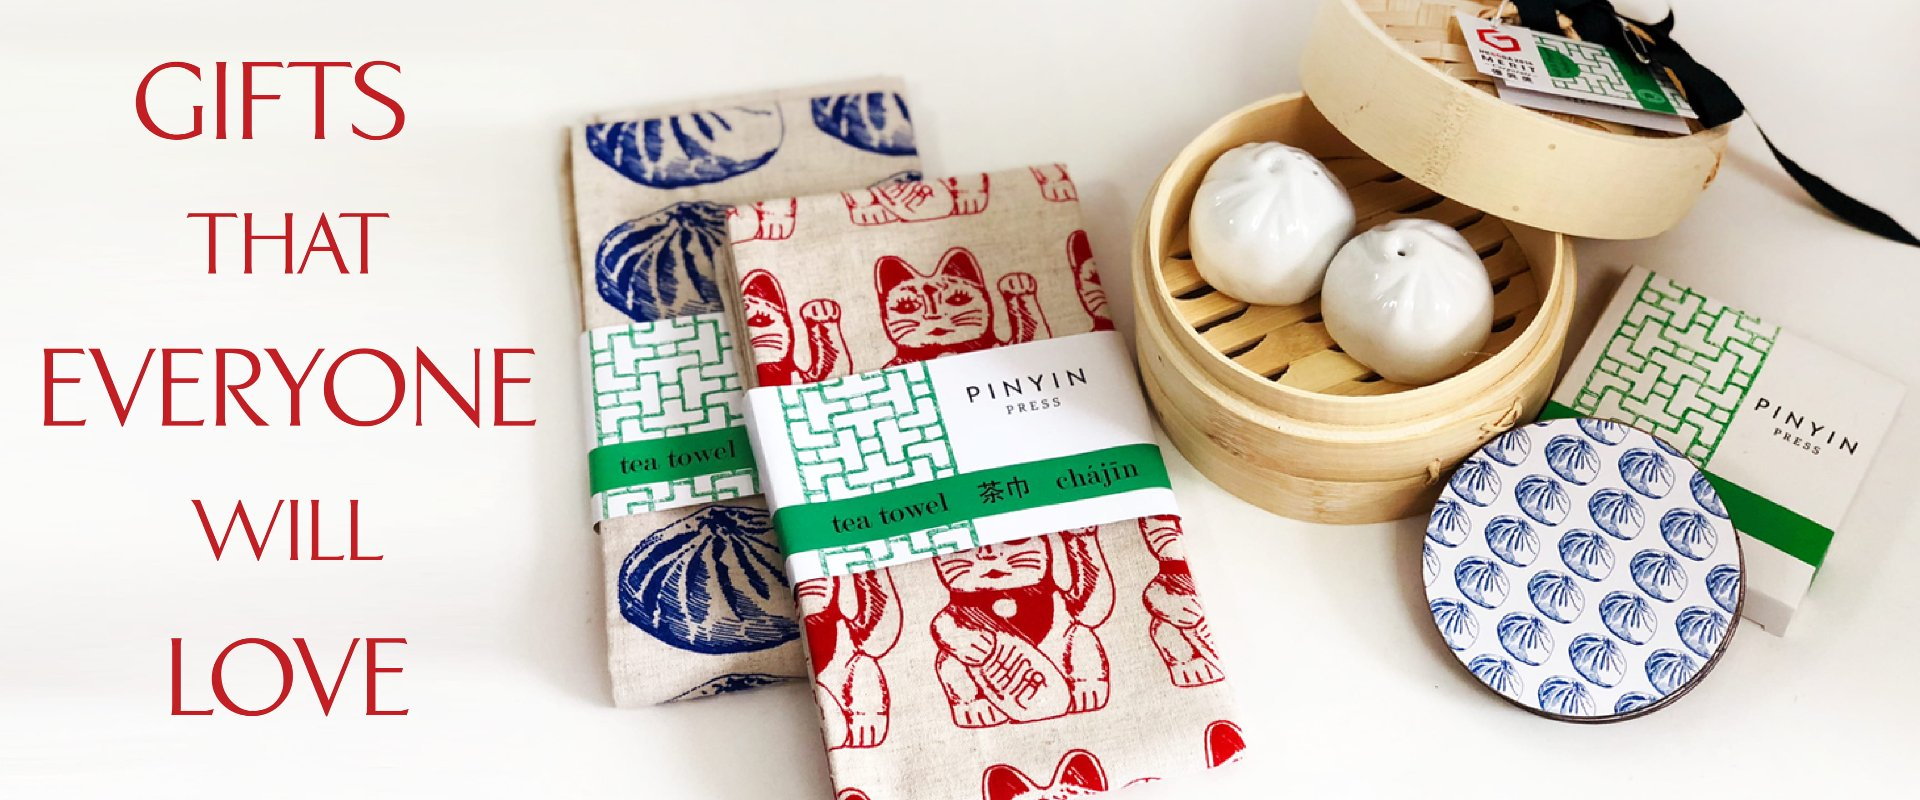 pinyin-press-deal-offer-baozi-salt-pepper-shakers